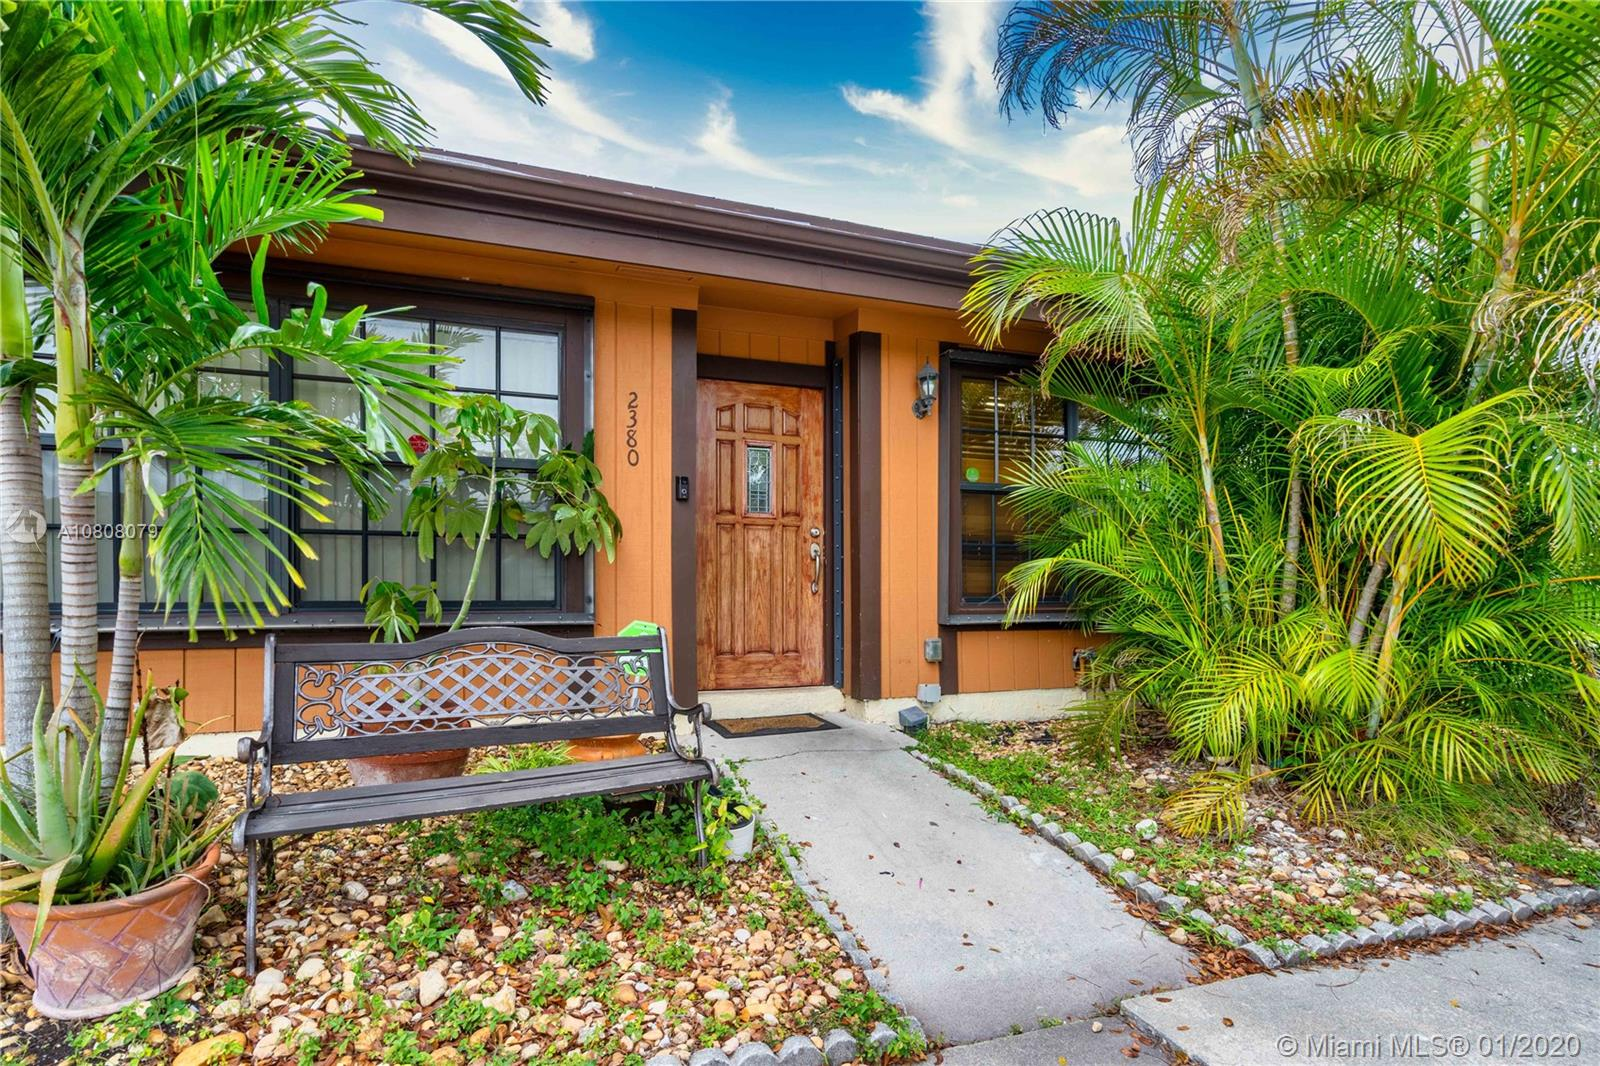 FHA APPROVED Villa in desirable Pembroke Pines!! Don't miss this rarely available 2/2 plus loft in Cedarwoods. This is a great corner unit with an open floor plan, Impact windows & doors and new AC unit. Tile and laminate floor throughout with vaulted ceilings. Great little community that is pet-friendly. This home has extra space in the fenced backyard being that it is a corner unit. No renting for 2 years. Roof 2006. No commercial vehicles. The association paints the exterior every 7 years and maintains common areas.